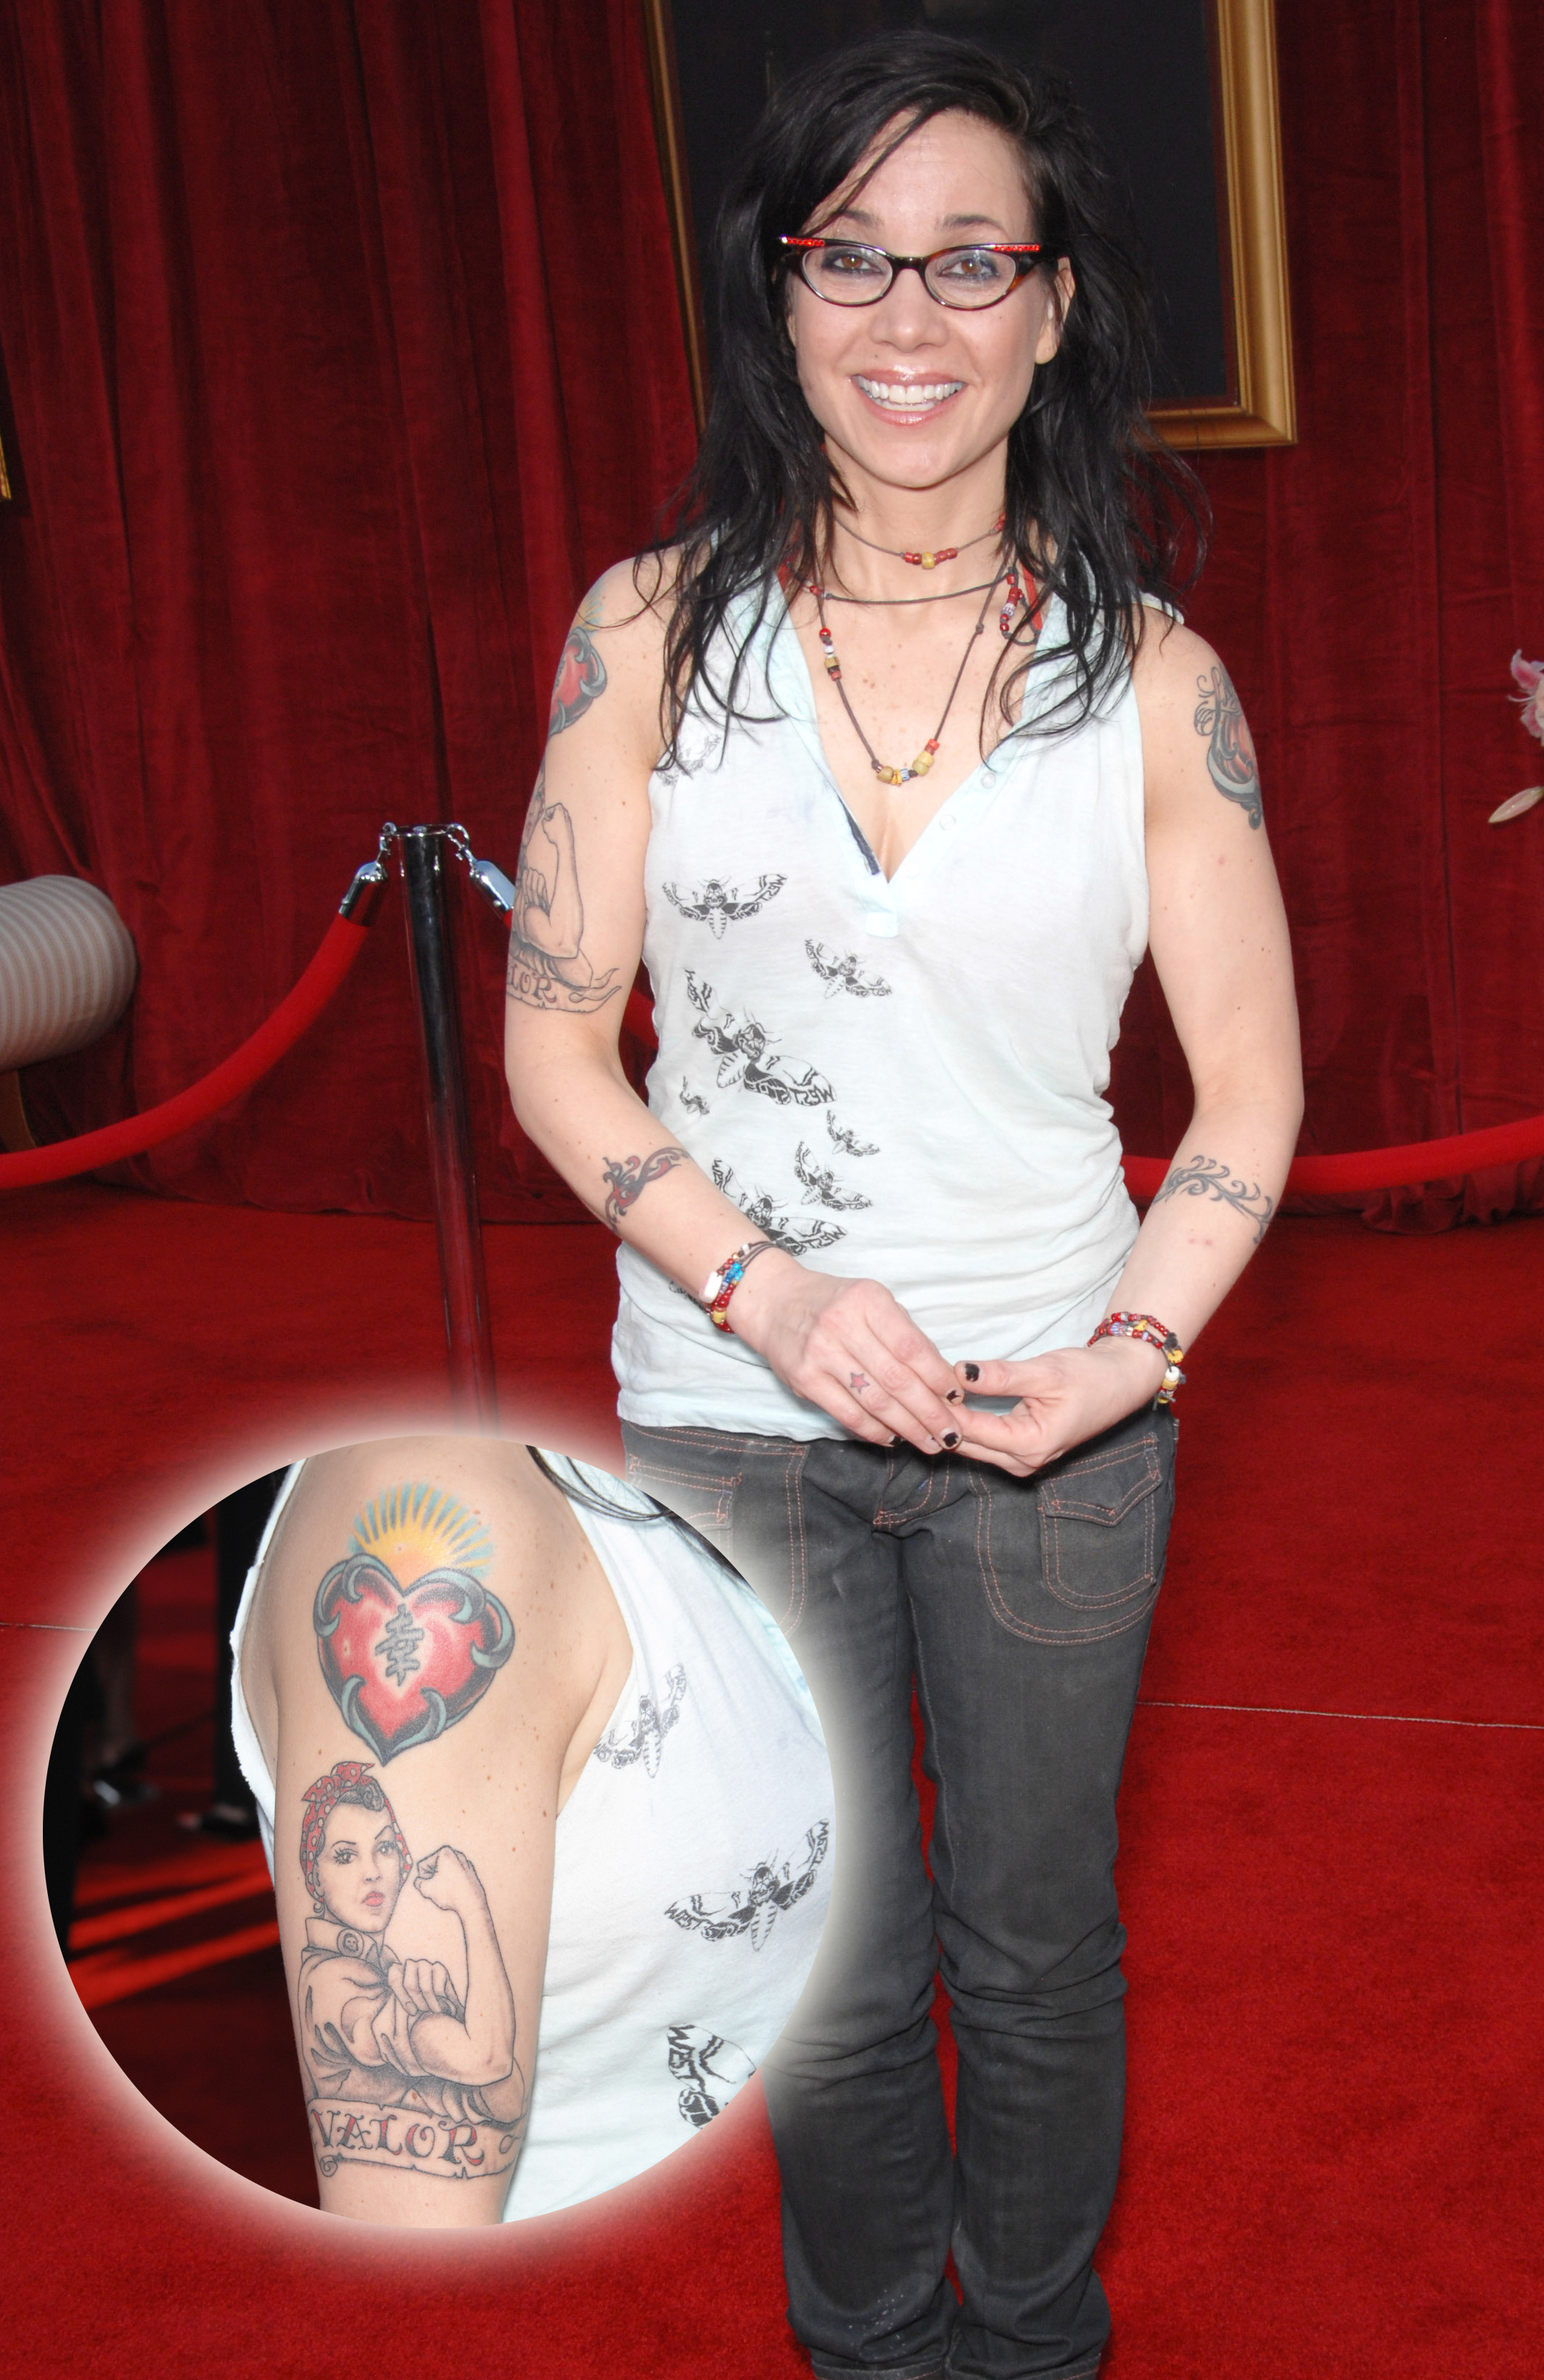 "9cfa010a4 Stand-up comedian, actress, and activist Janeane Garofalo has a decent-size  collection of tattoos, including this Rosie the Riviter portrait with  ""Valor"" ..."